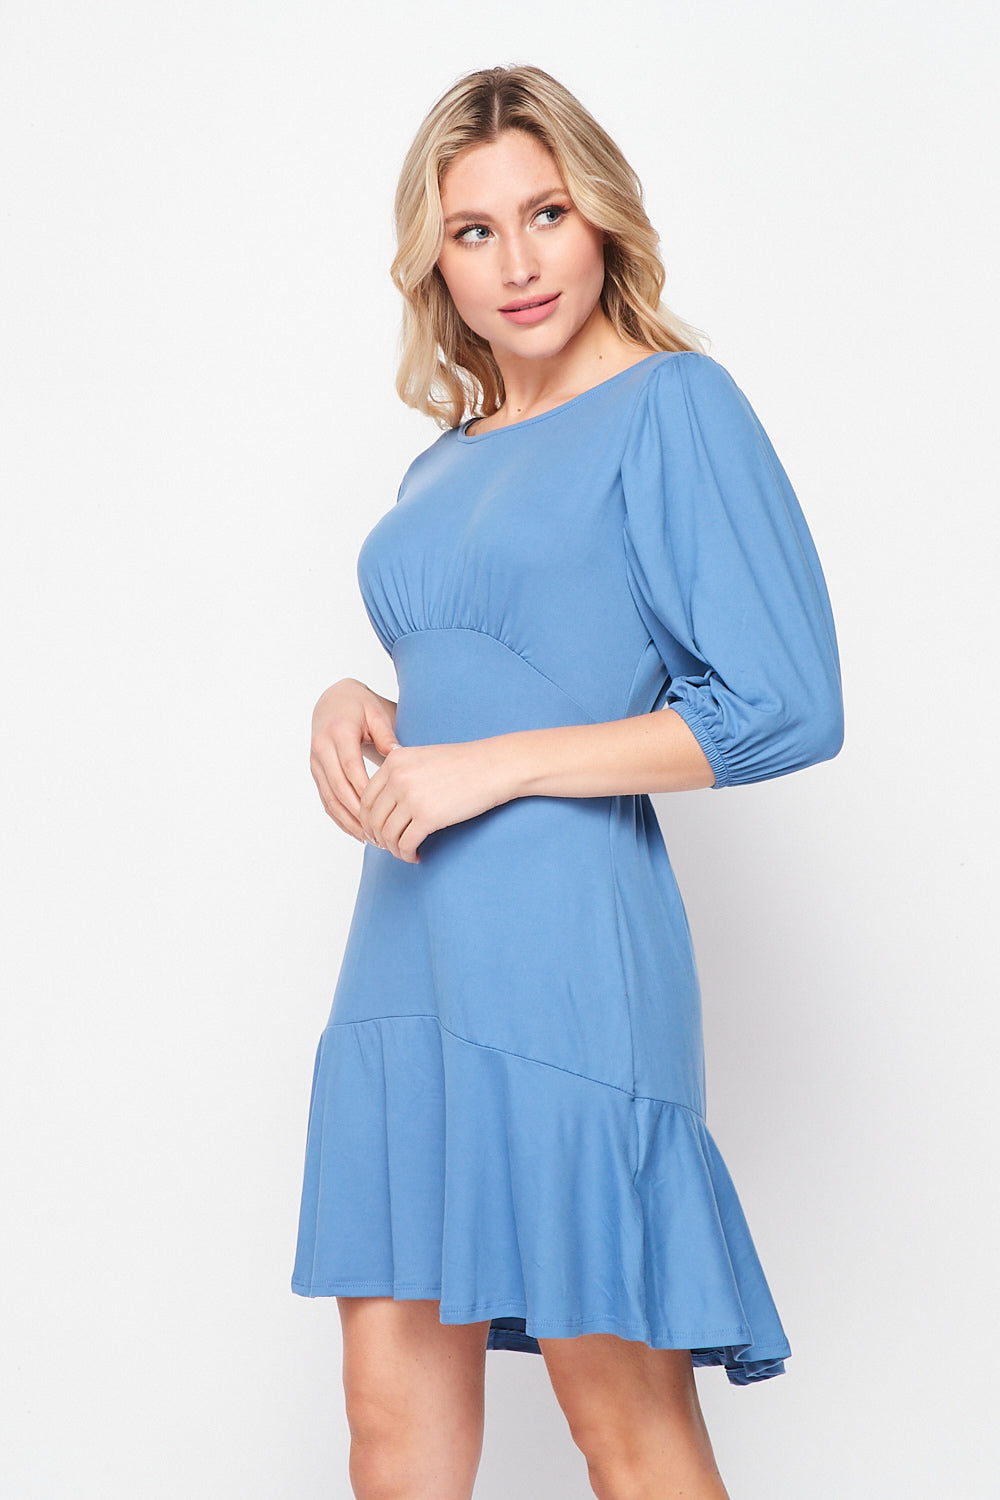 Dance With Me Vintage Inspired Knit Dress | Light Blue - Velvet Torch